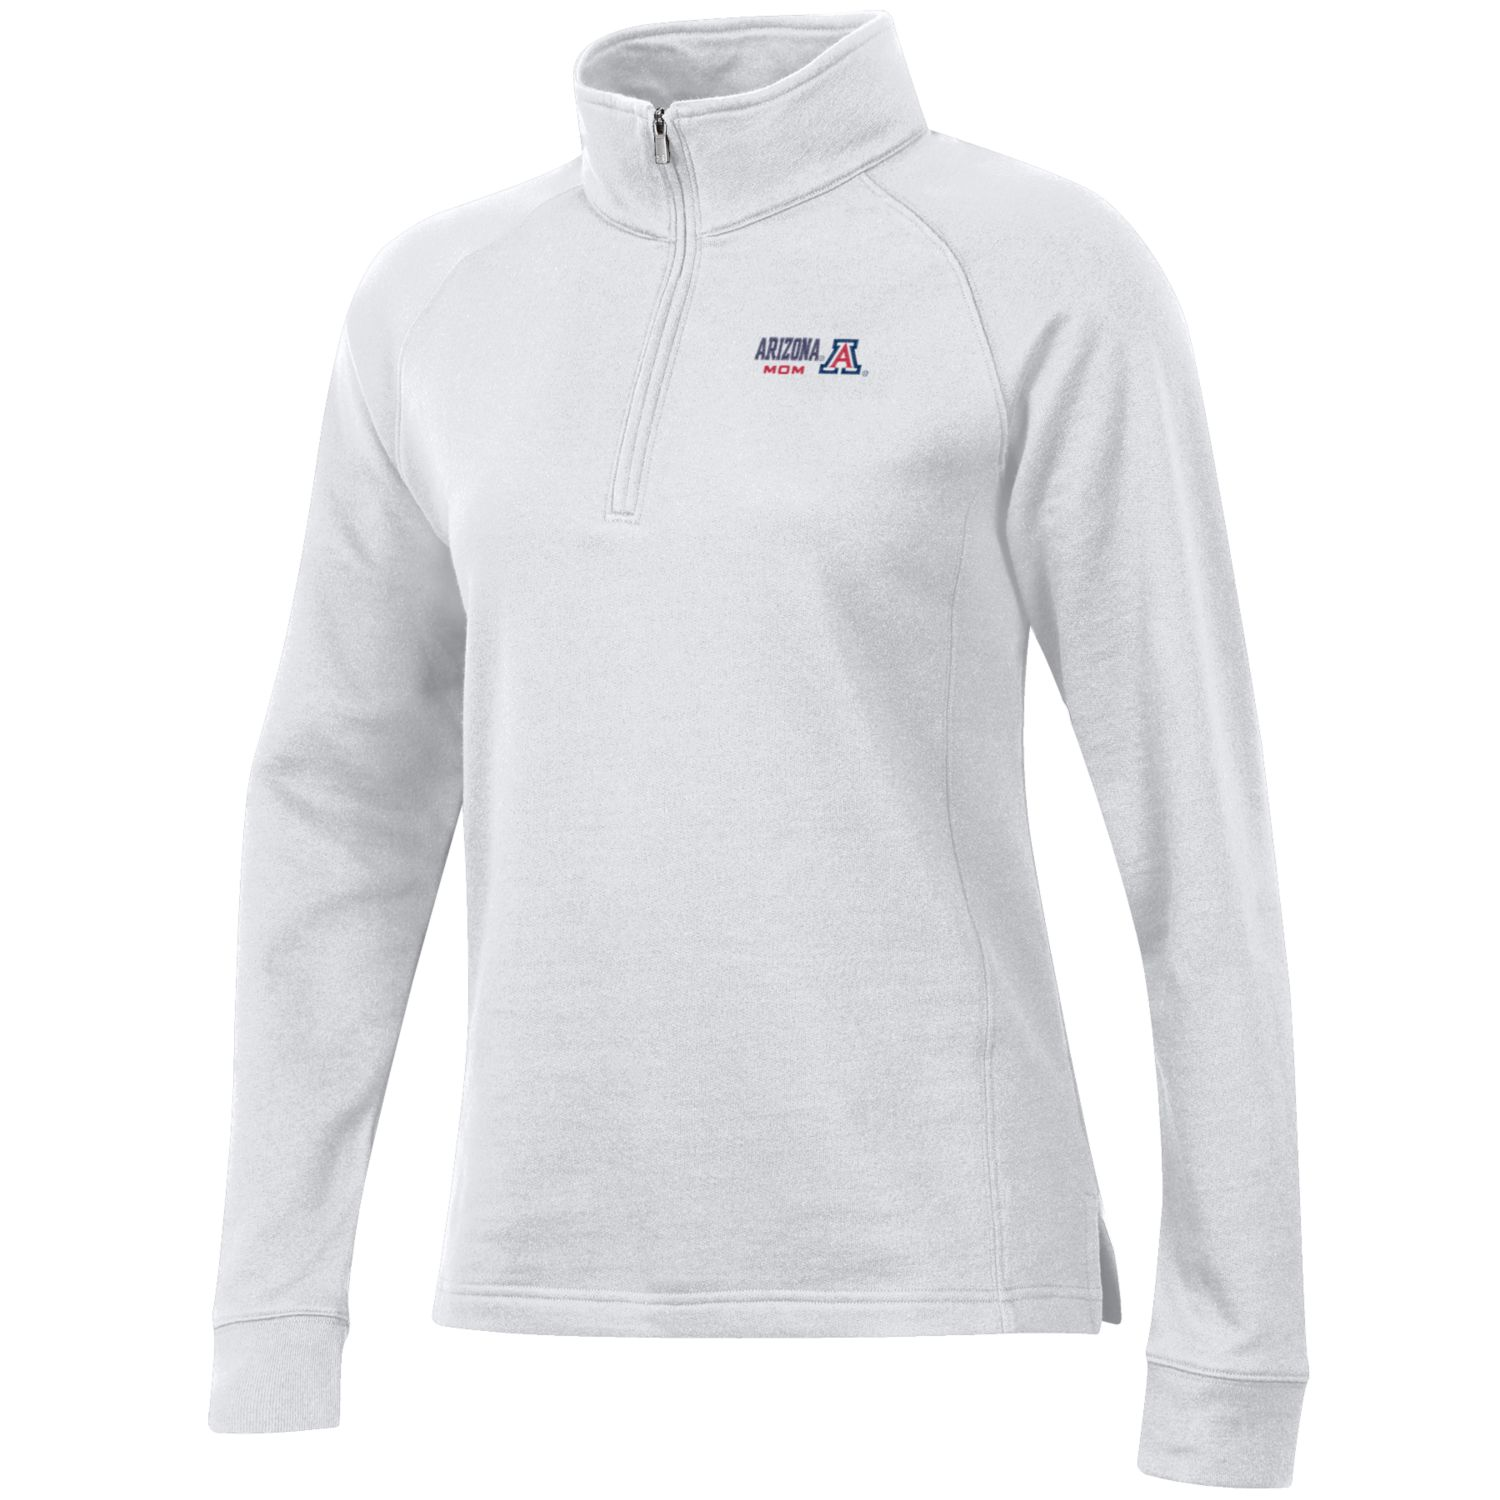 Image For Gear: Arizona MOM Relax Quarter Zip Pullover - White